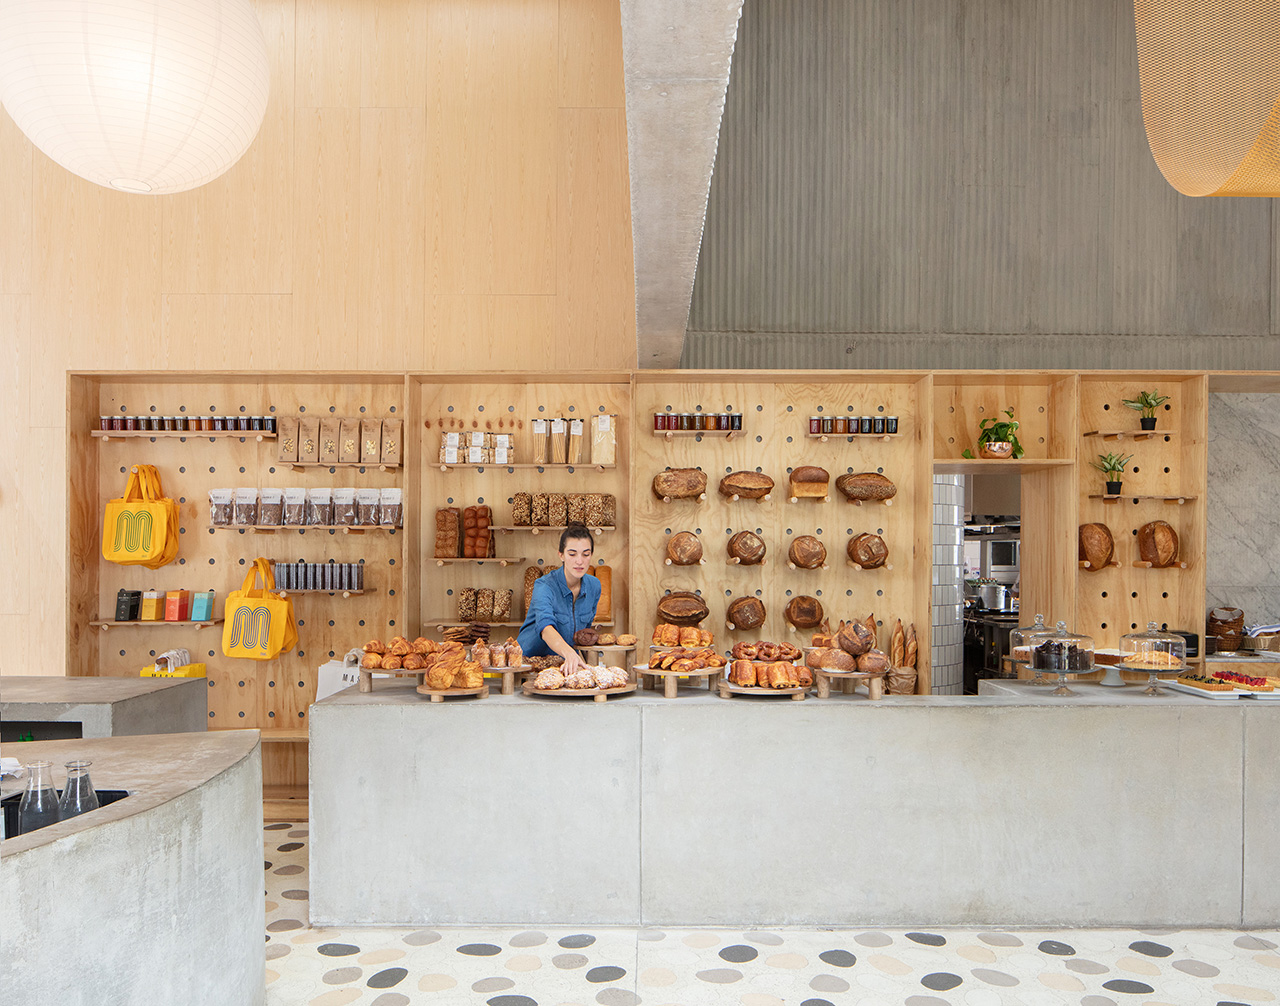 ©NahoKubota.  The organized bakery space filled with delicious baked goods.